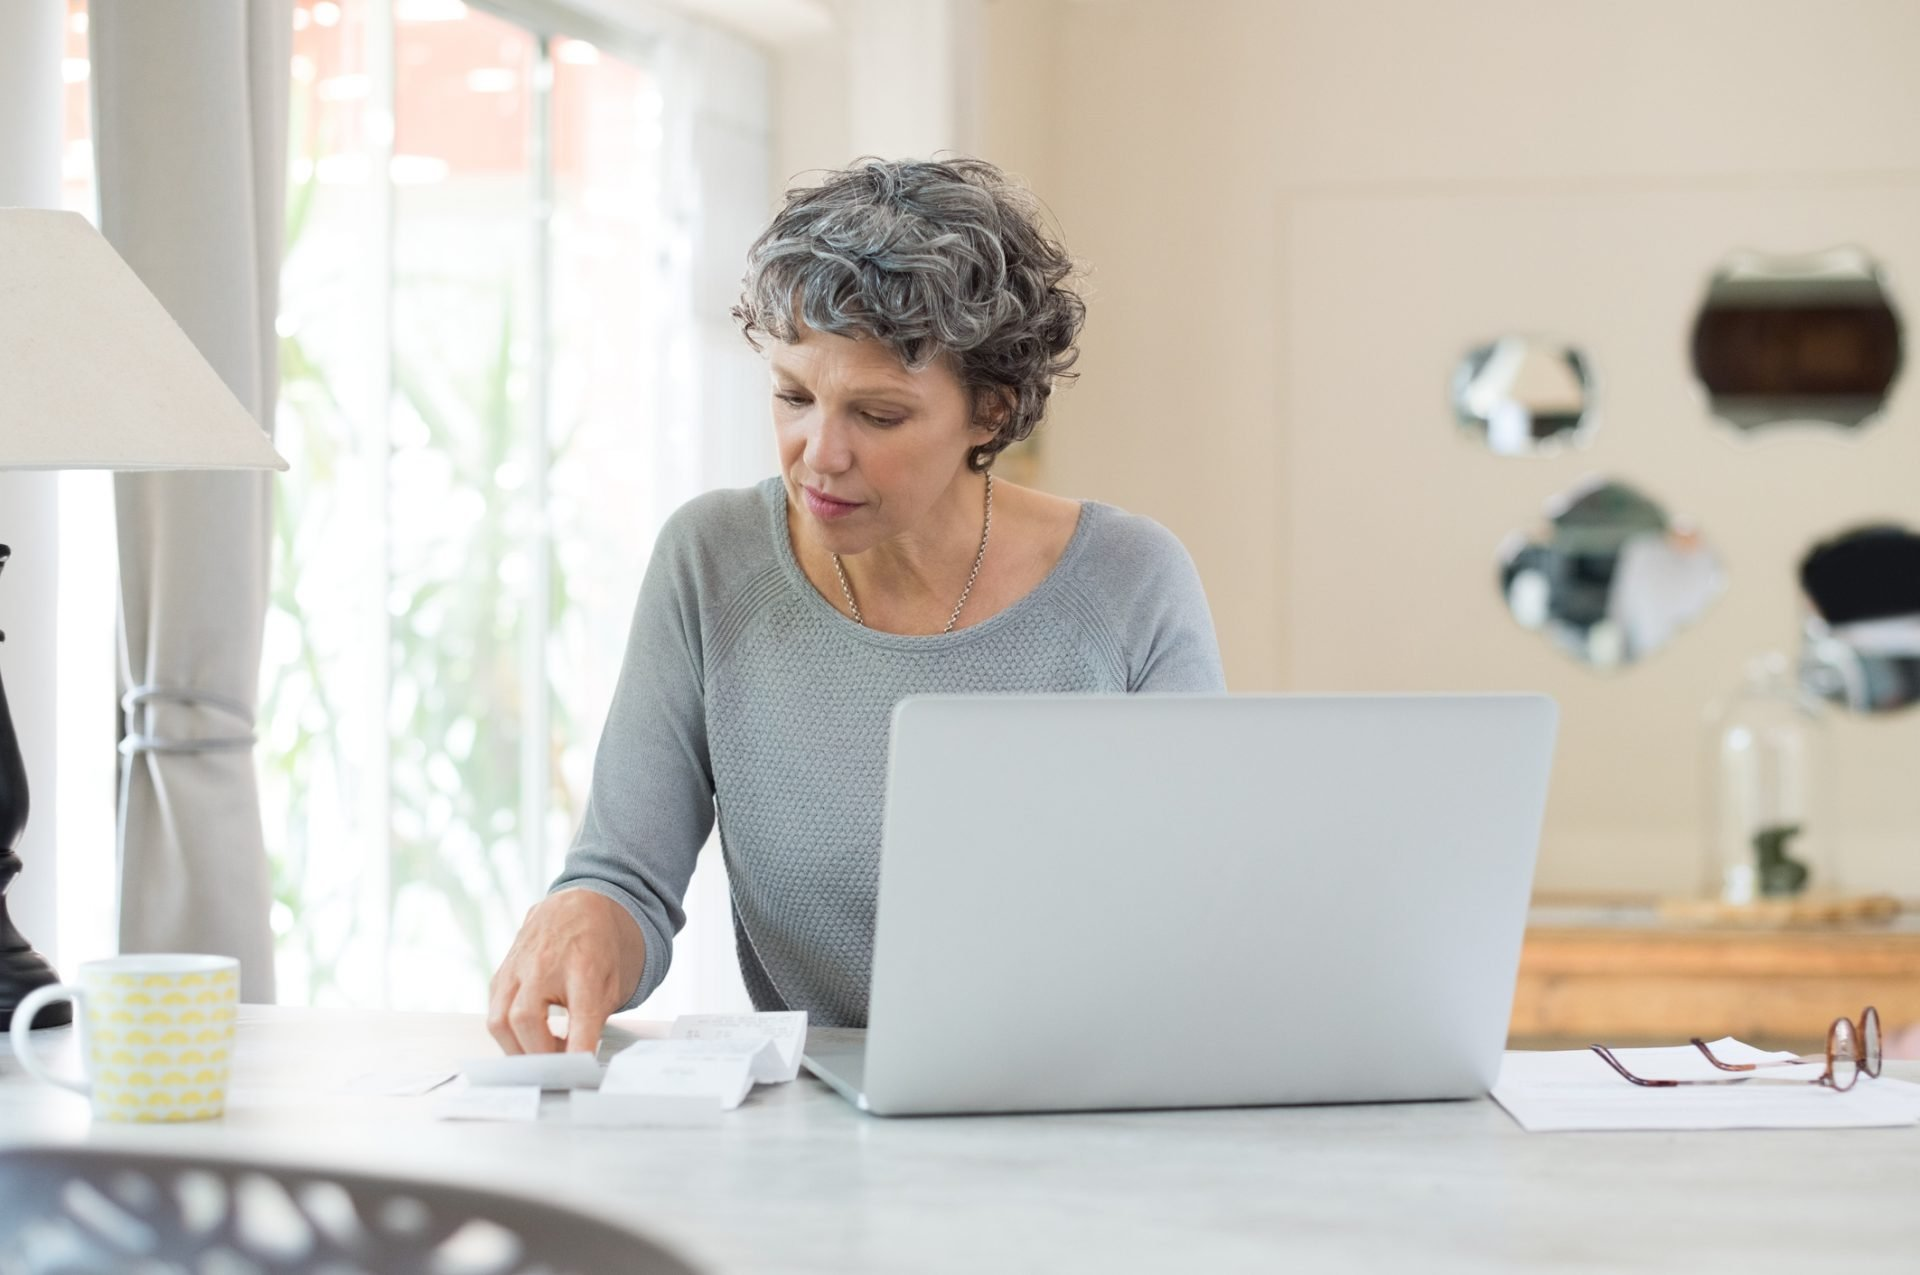 The SSA Has an Online Portal to Manage Your Social Security – Here's Why You Should Use It